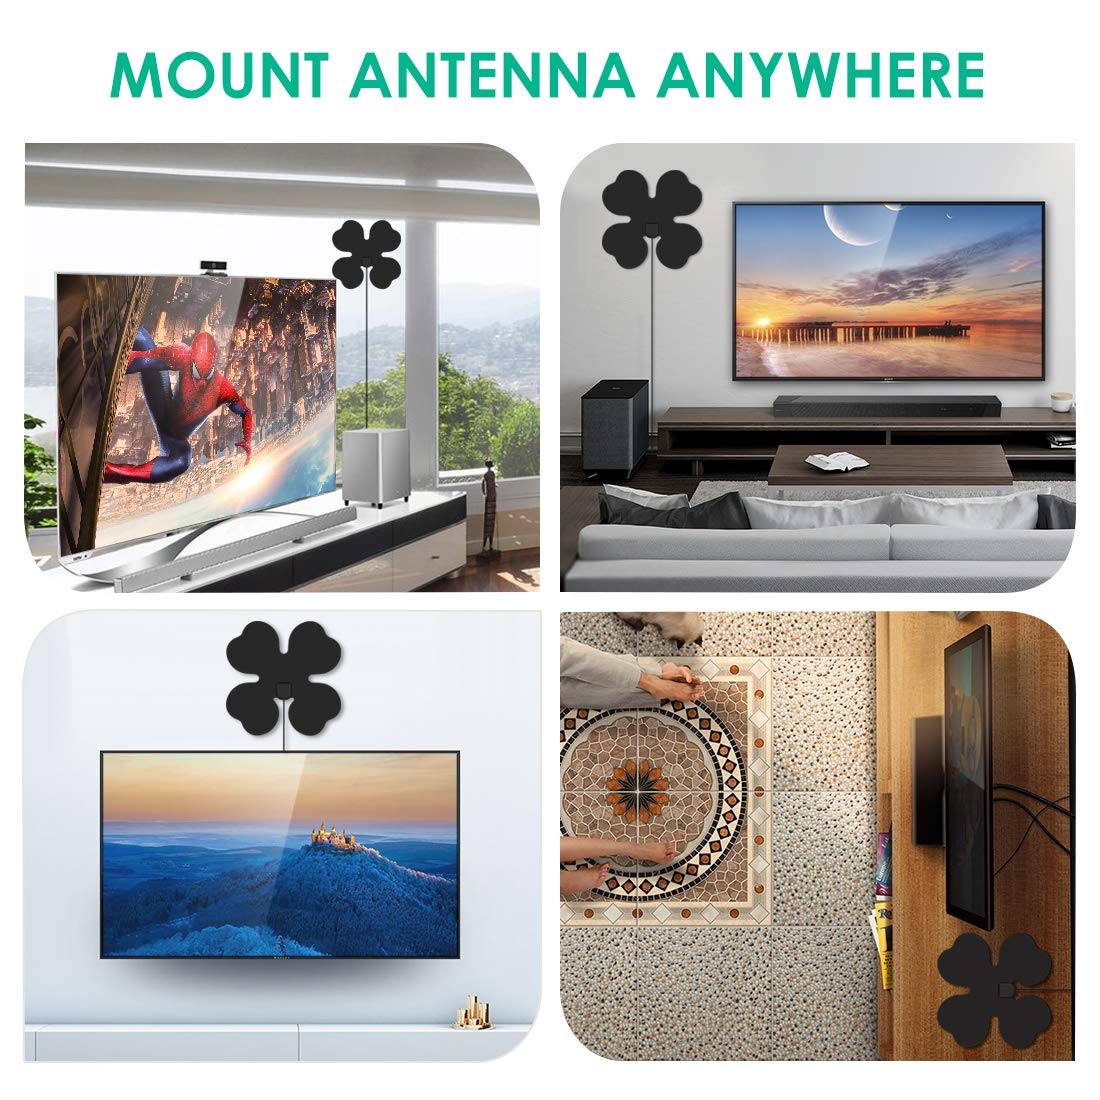 Kingbox TV Antenna Indoor Amplified Digital HDTV Antenna 80 Miles Range  1080p Full HD Antenna with Detachable Amplifier Signal Booster and 13 2FT  Coax